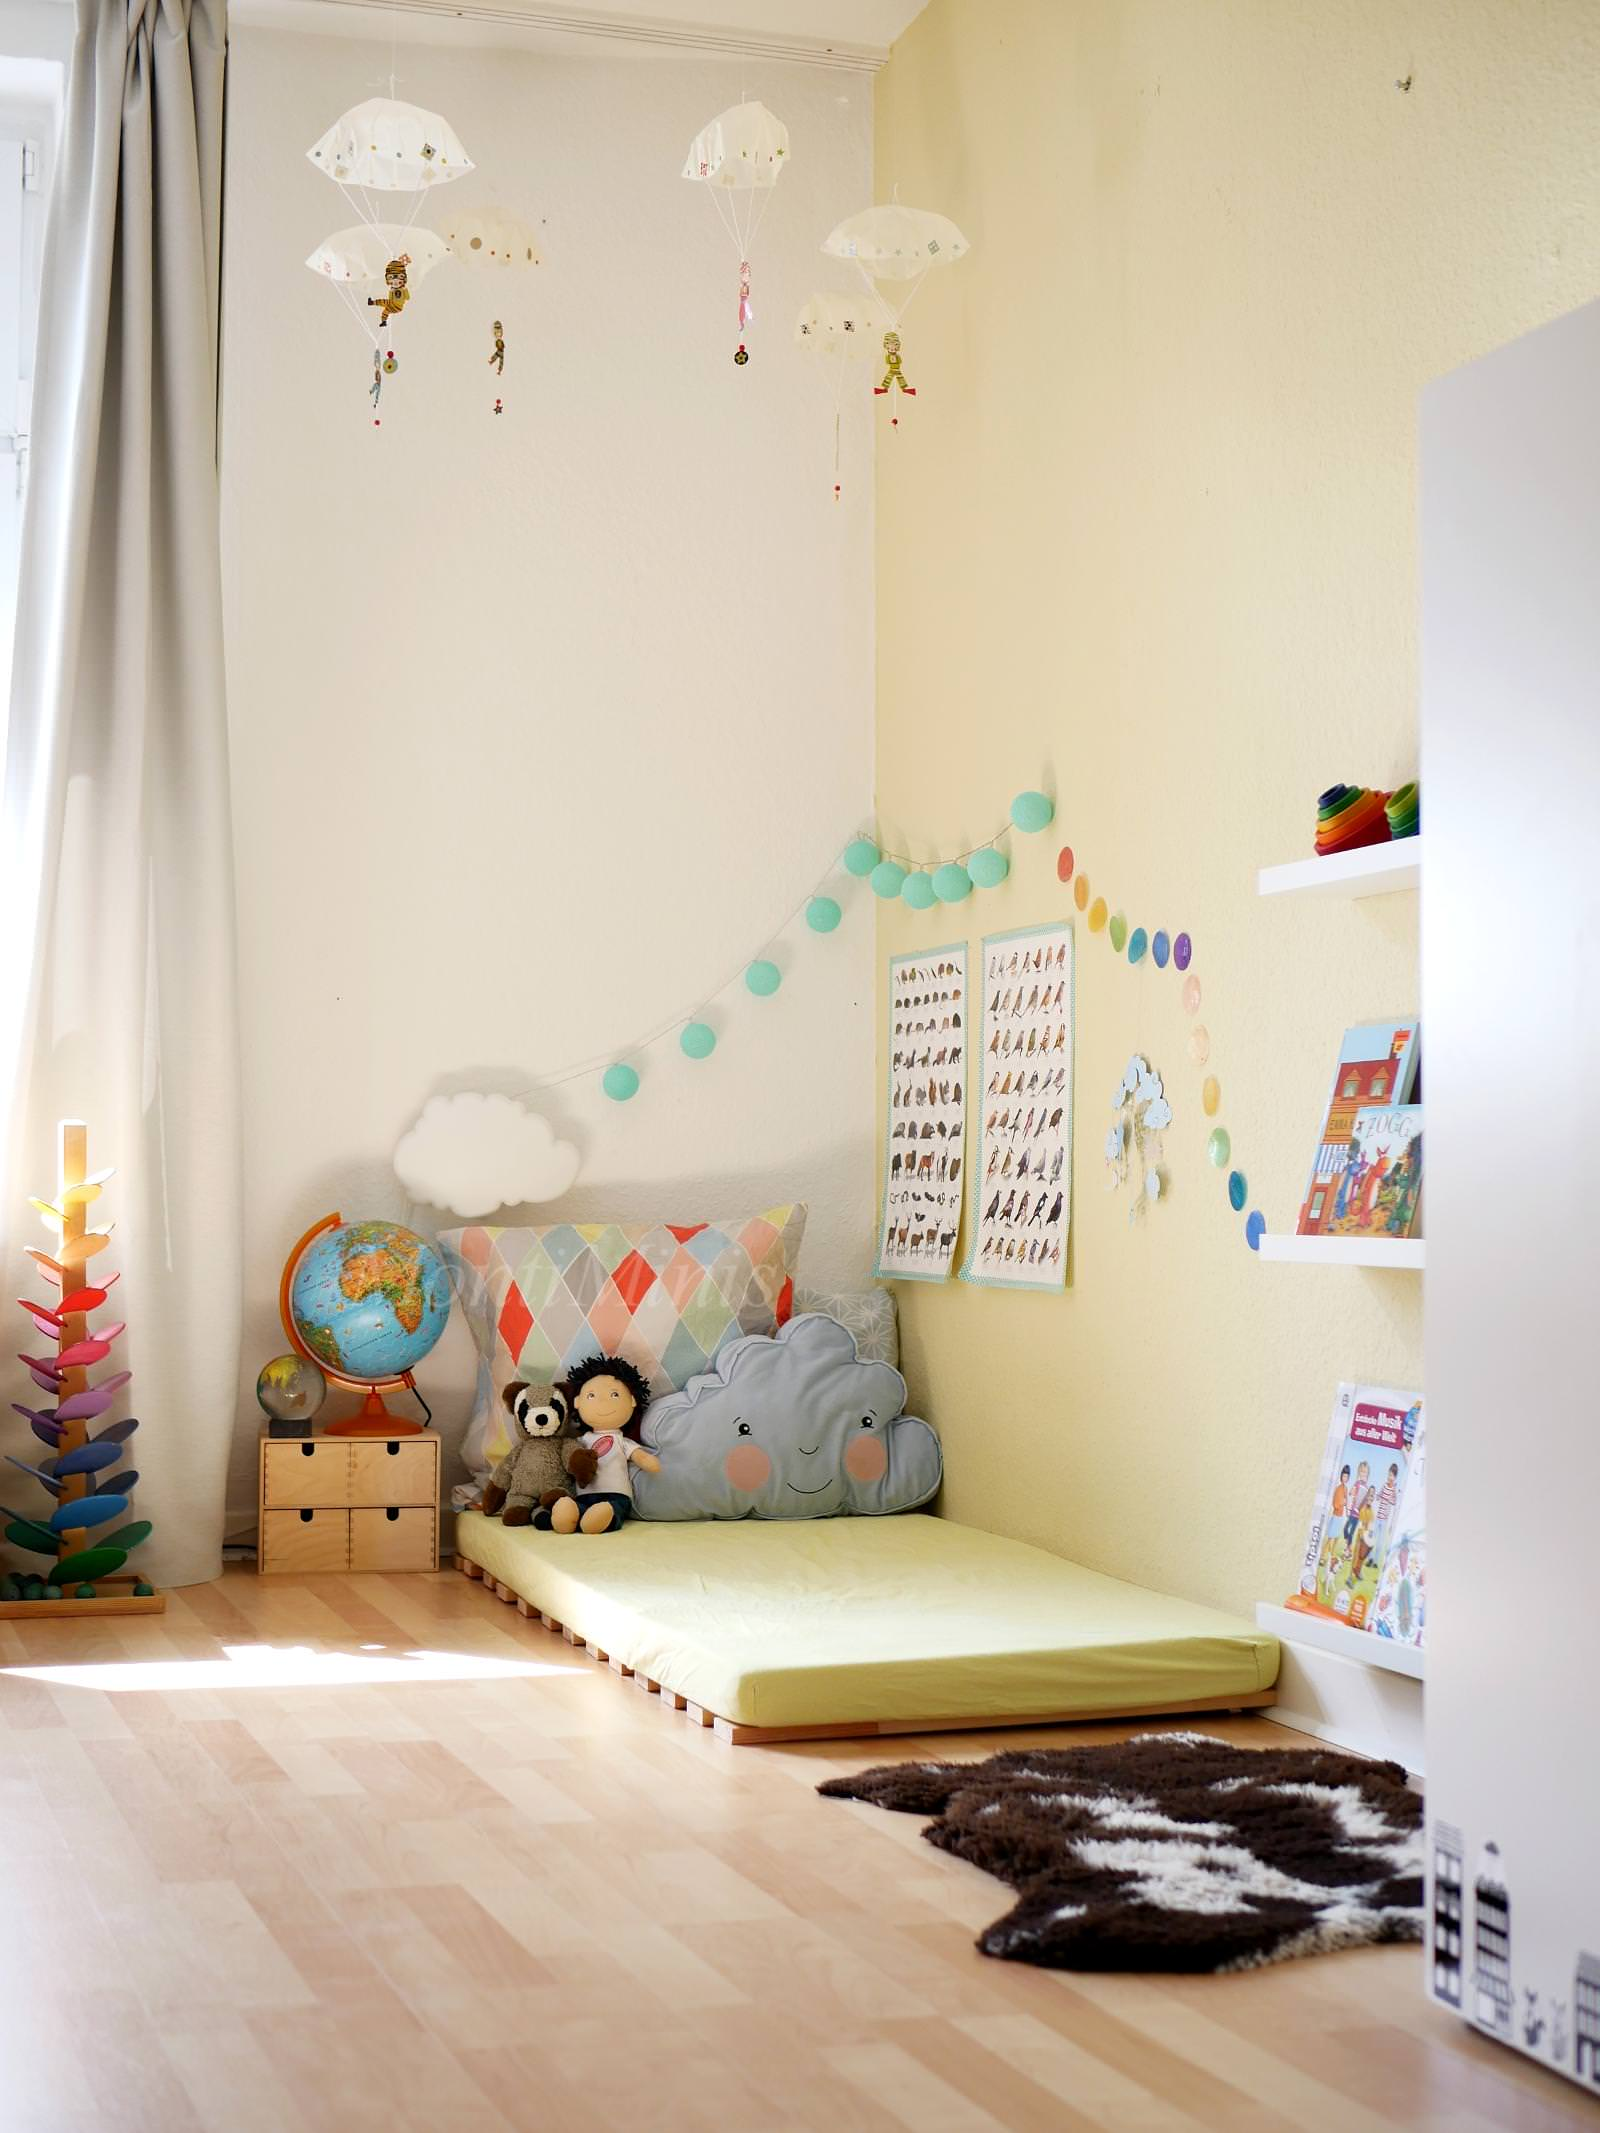 Michels kinderzimmer mit 2 5 jahren montiminis for Montessori kinderzimmer